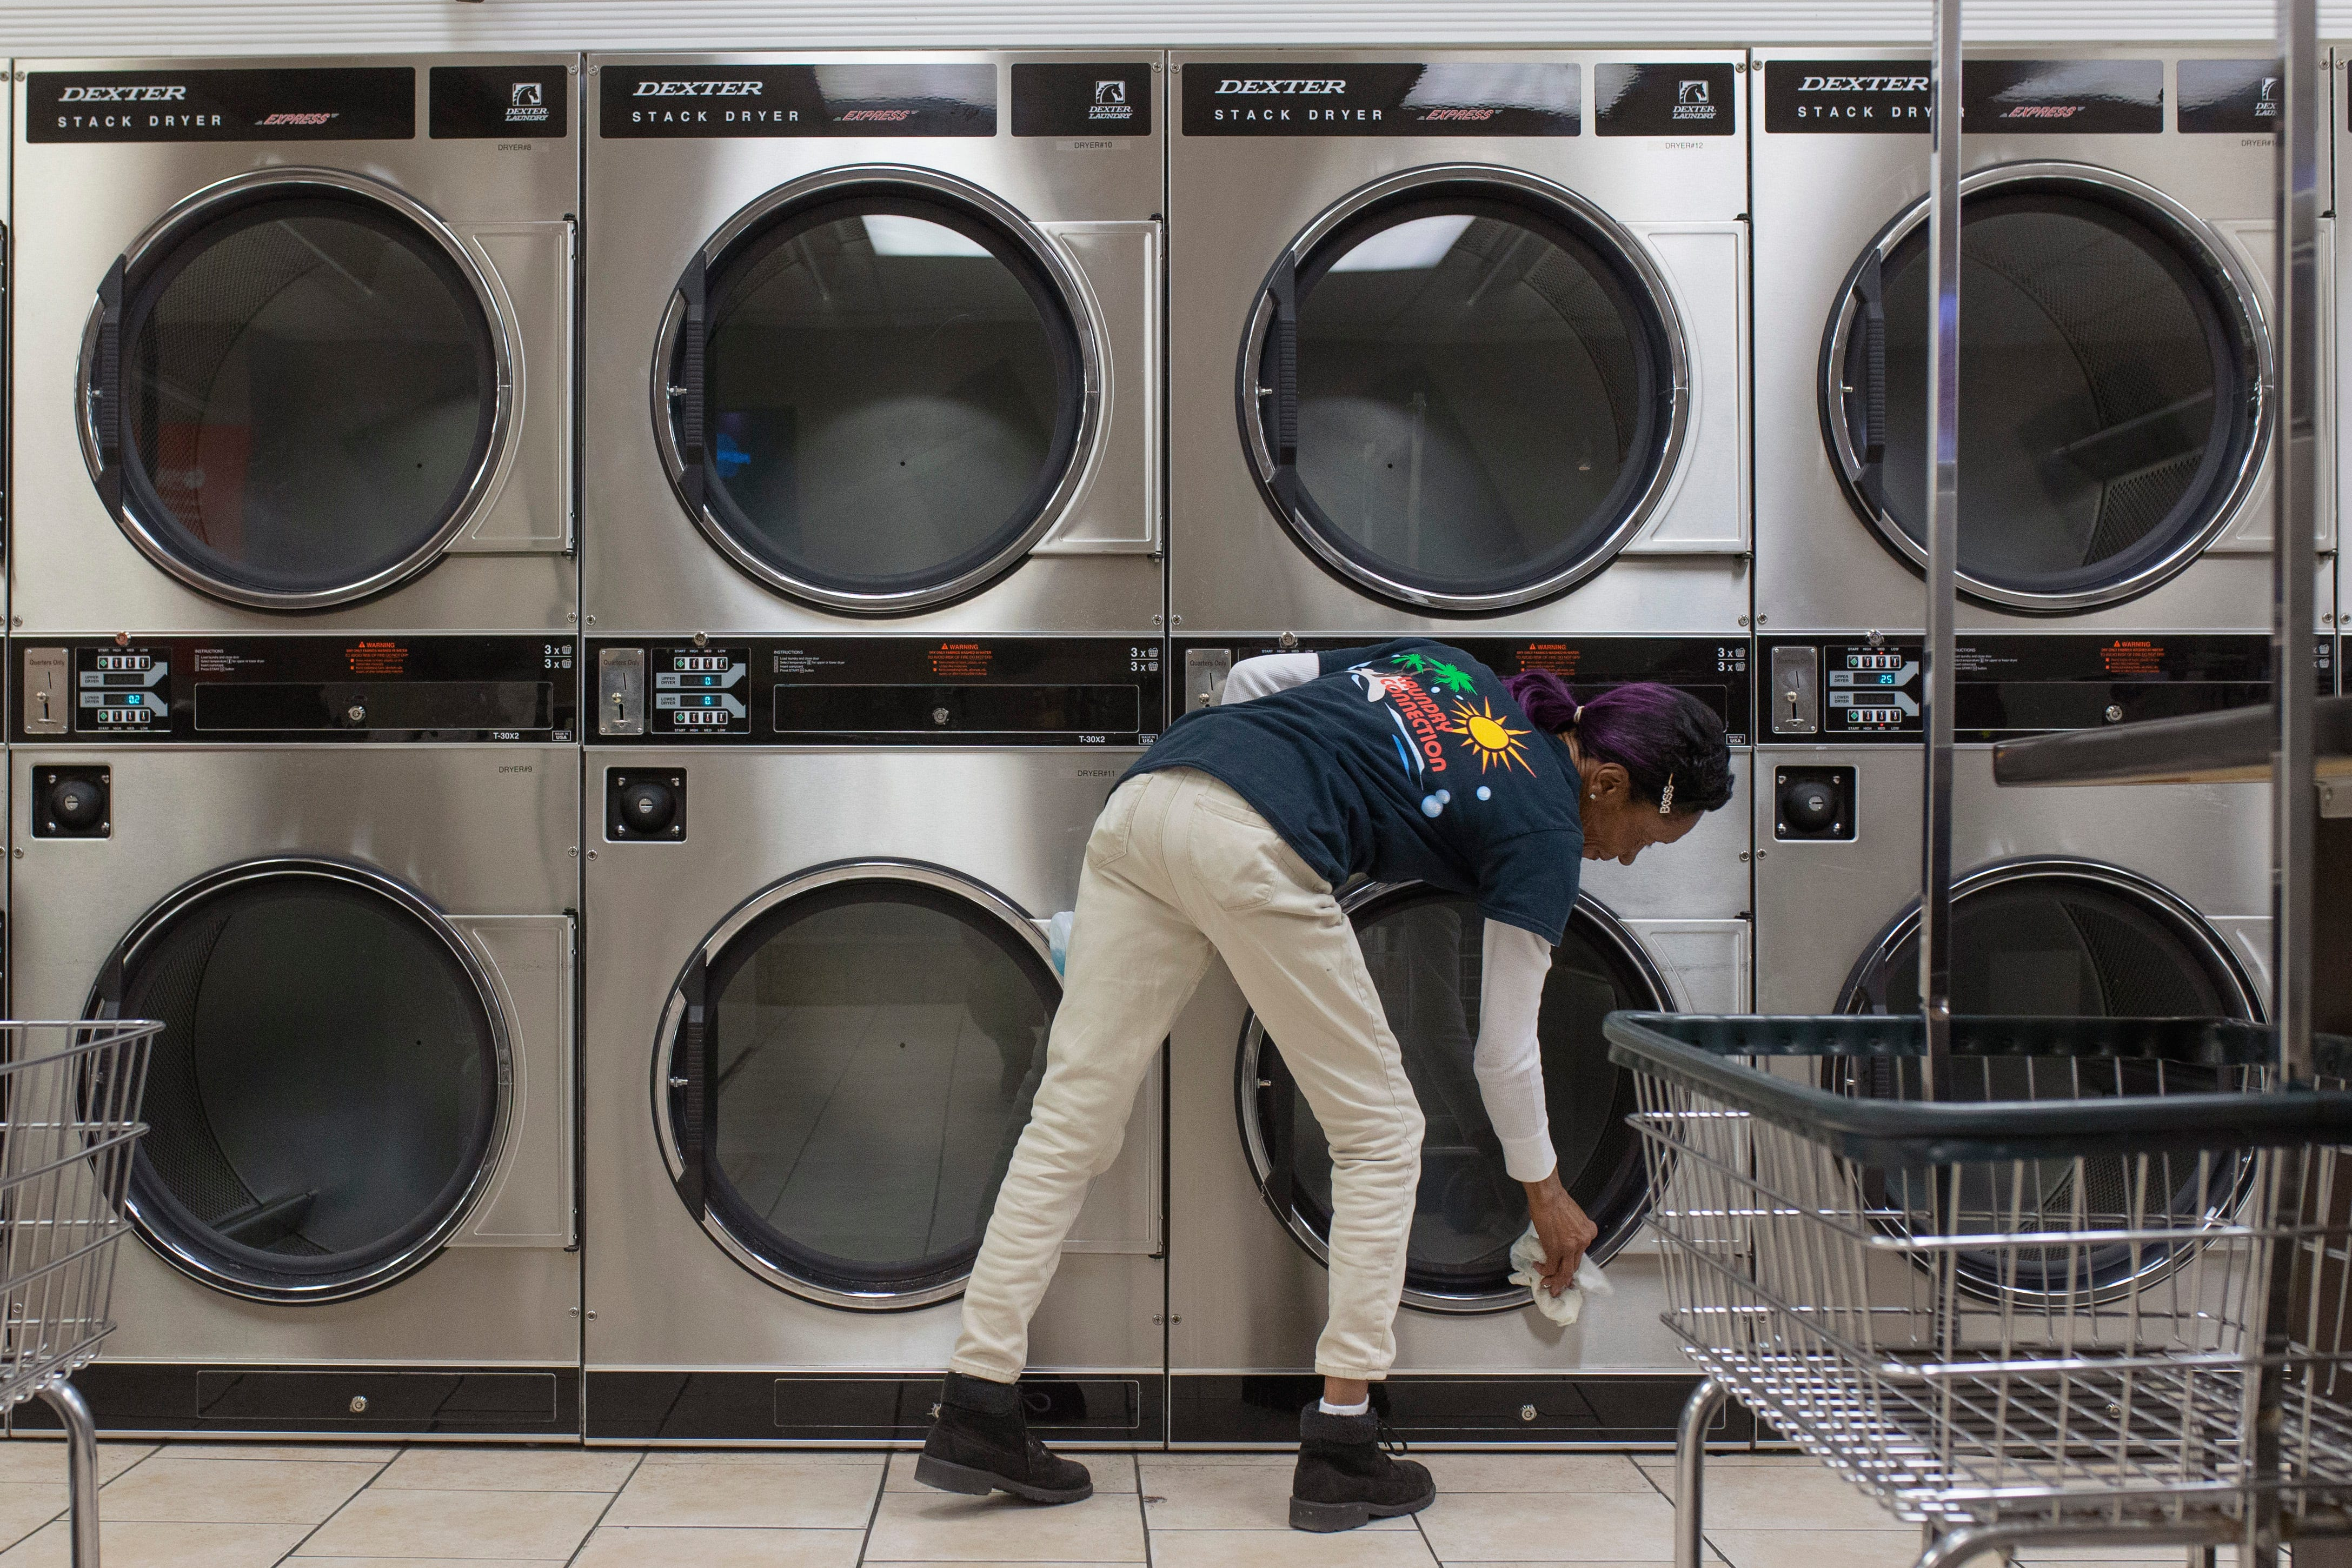 """11:09 PM  """"Miss"""" Margaret Shemwell works on cleaning up the dryers at Laundry Connection on Southgate Avenue just after closing on Jan. 16, 2020. """"I love what I do, because I just love cleaning,"""" Shemwell, who has worked in laundromats for nine years, said."""